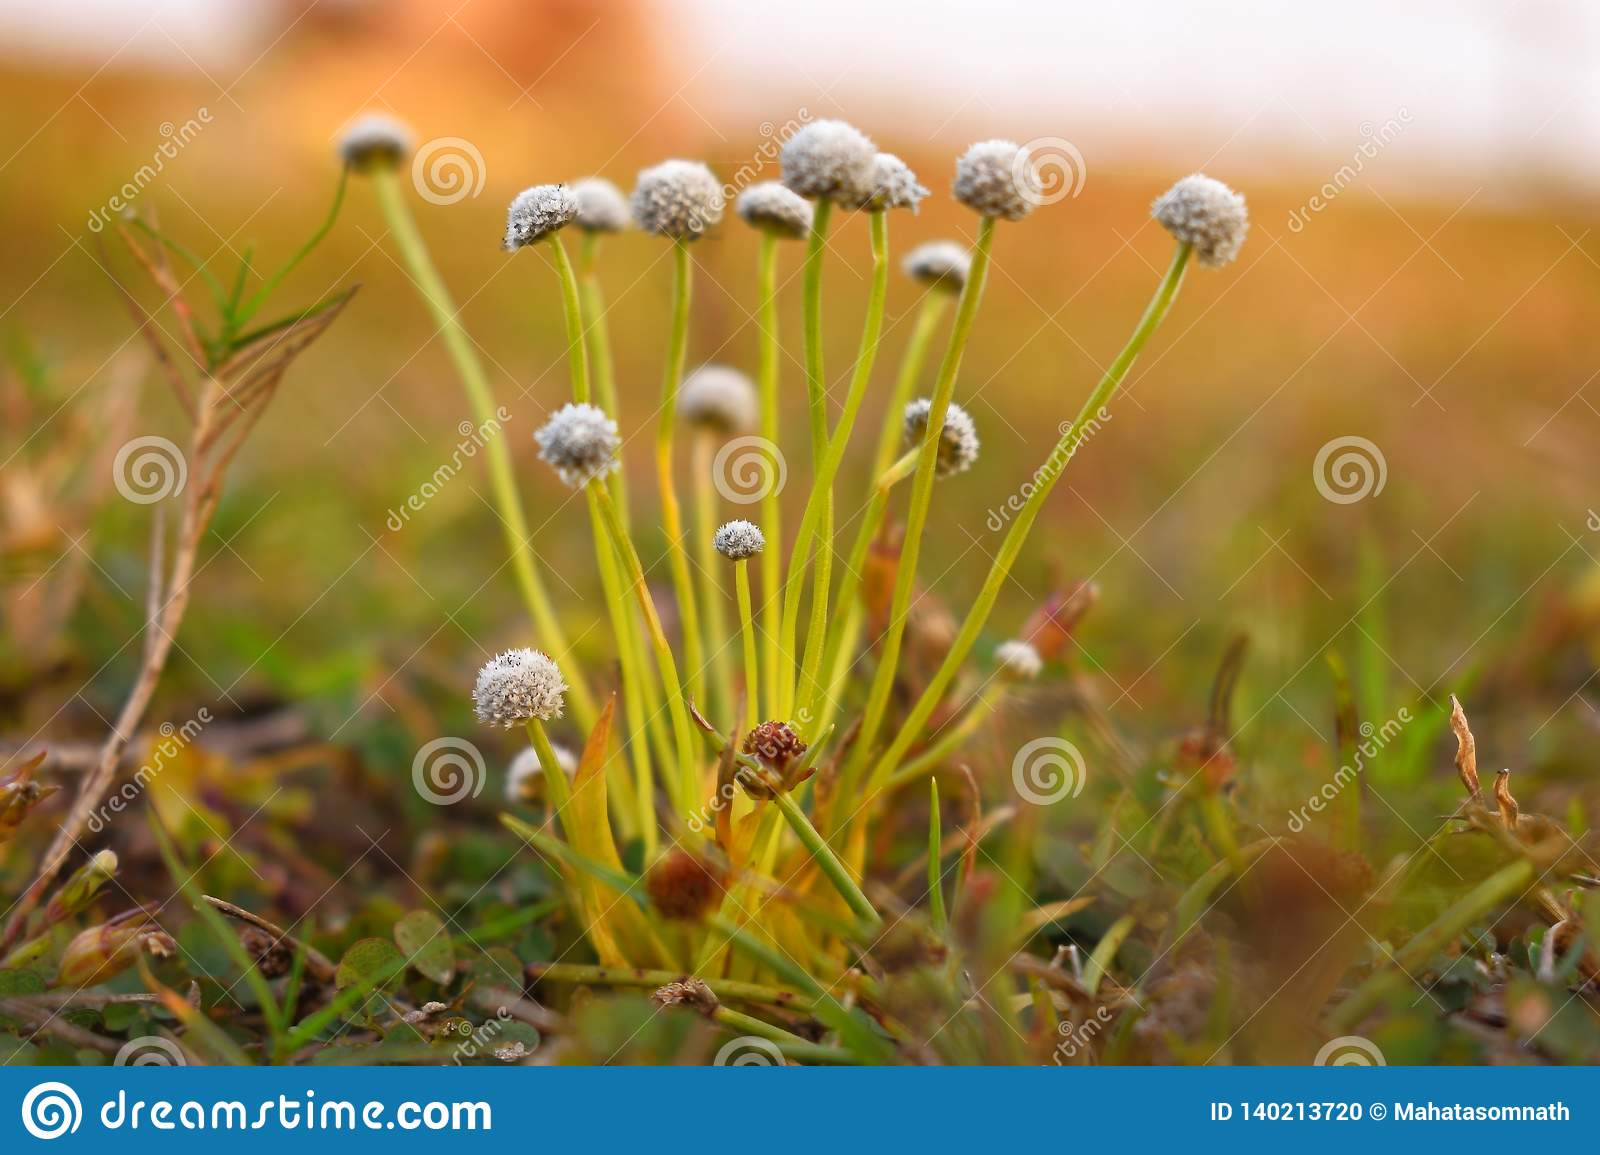 Some beautiful tiny flowers of grass